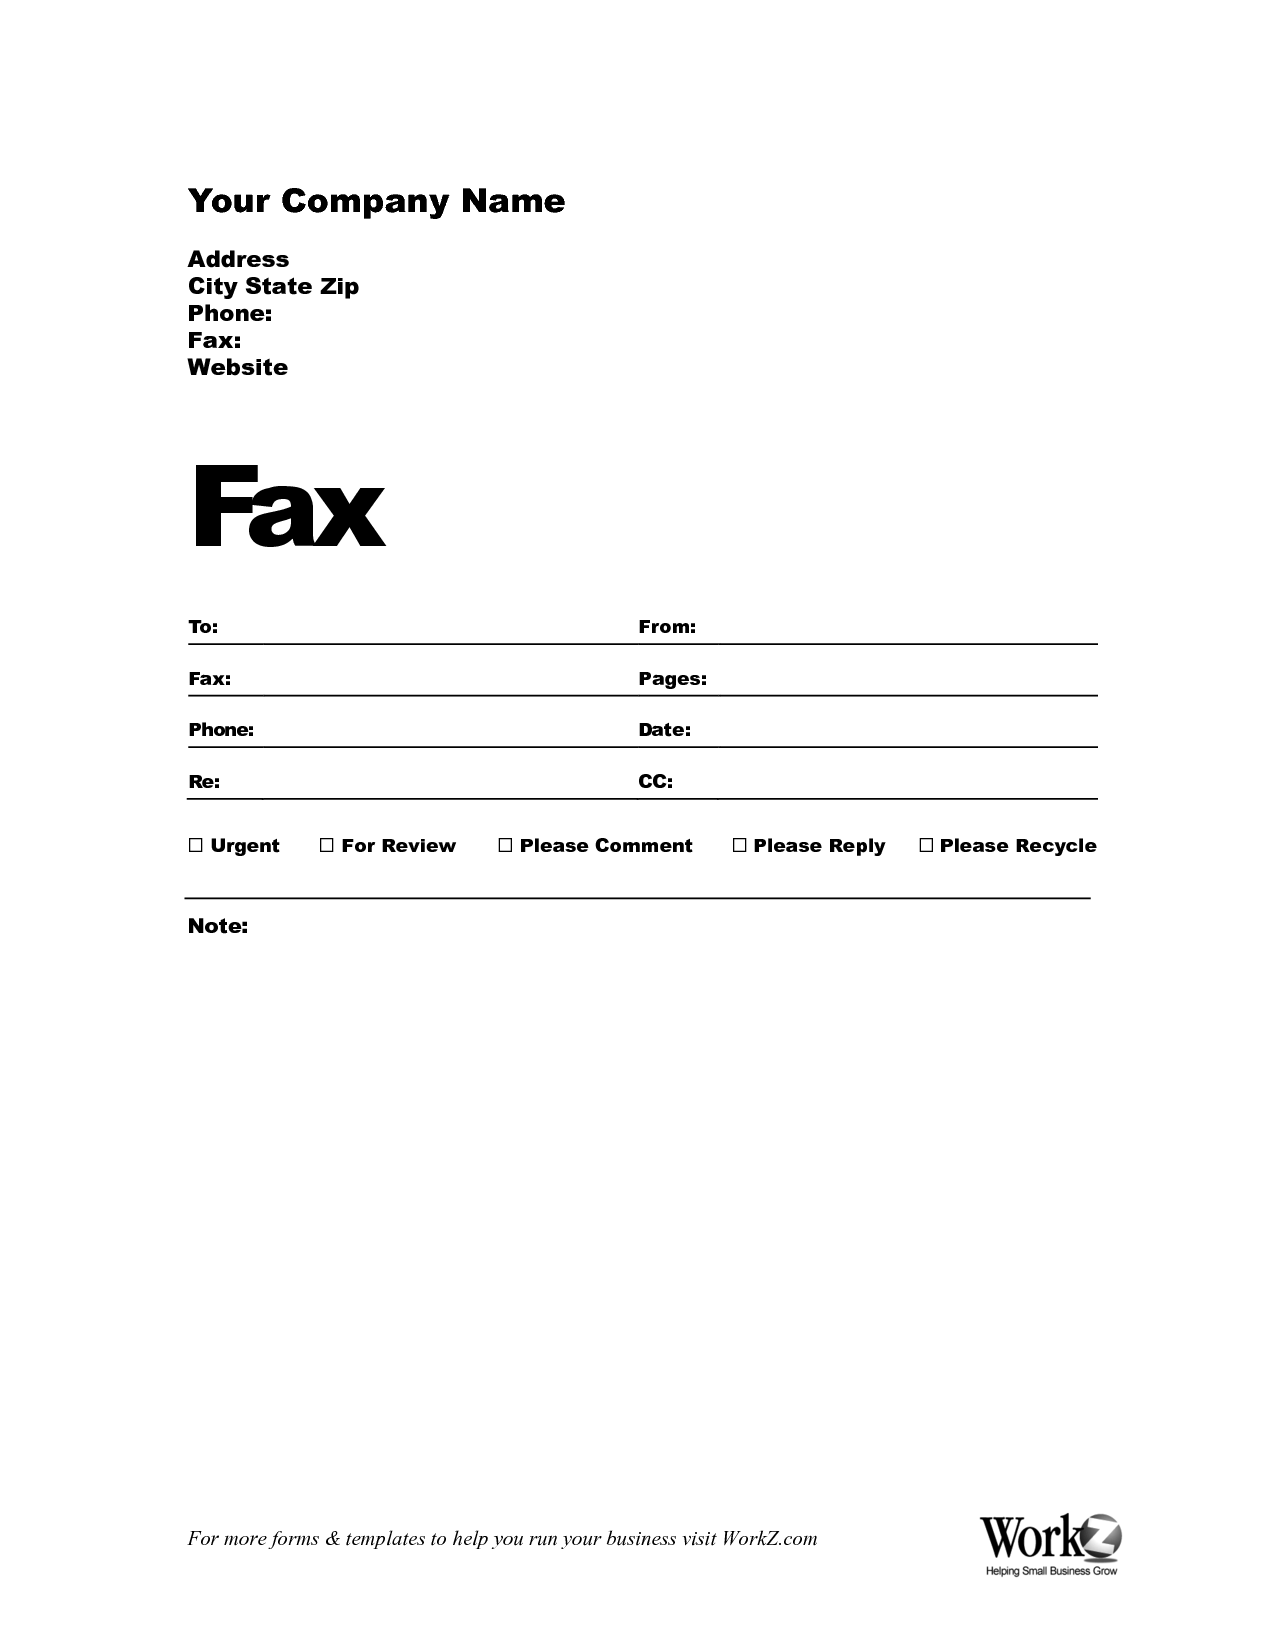 Elegant Fax Cover Sheet Docx With Fax Cover Page Templates